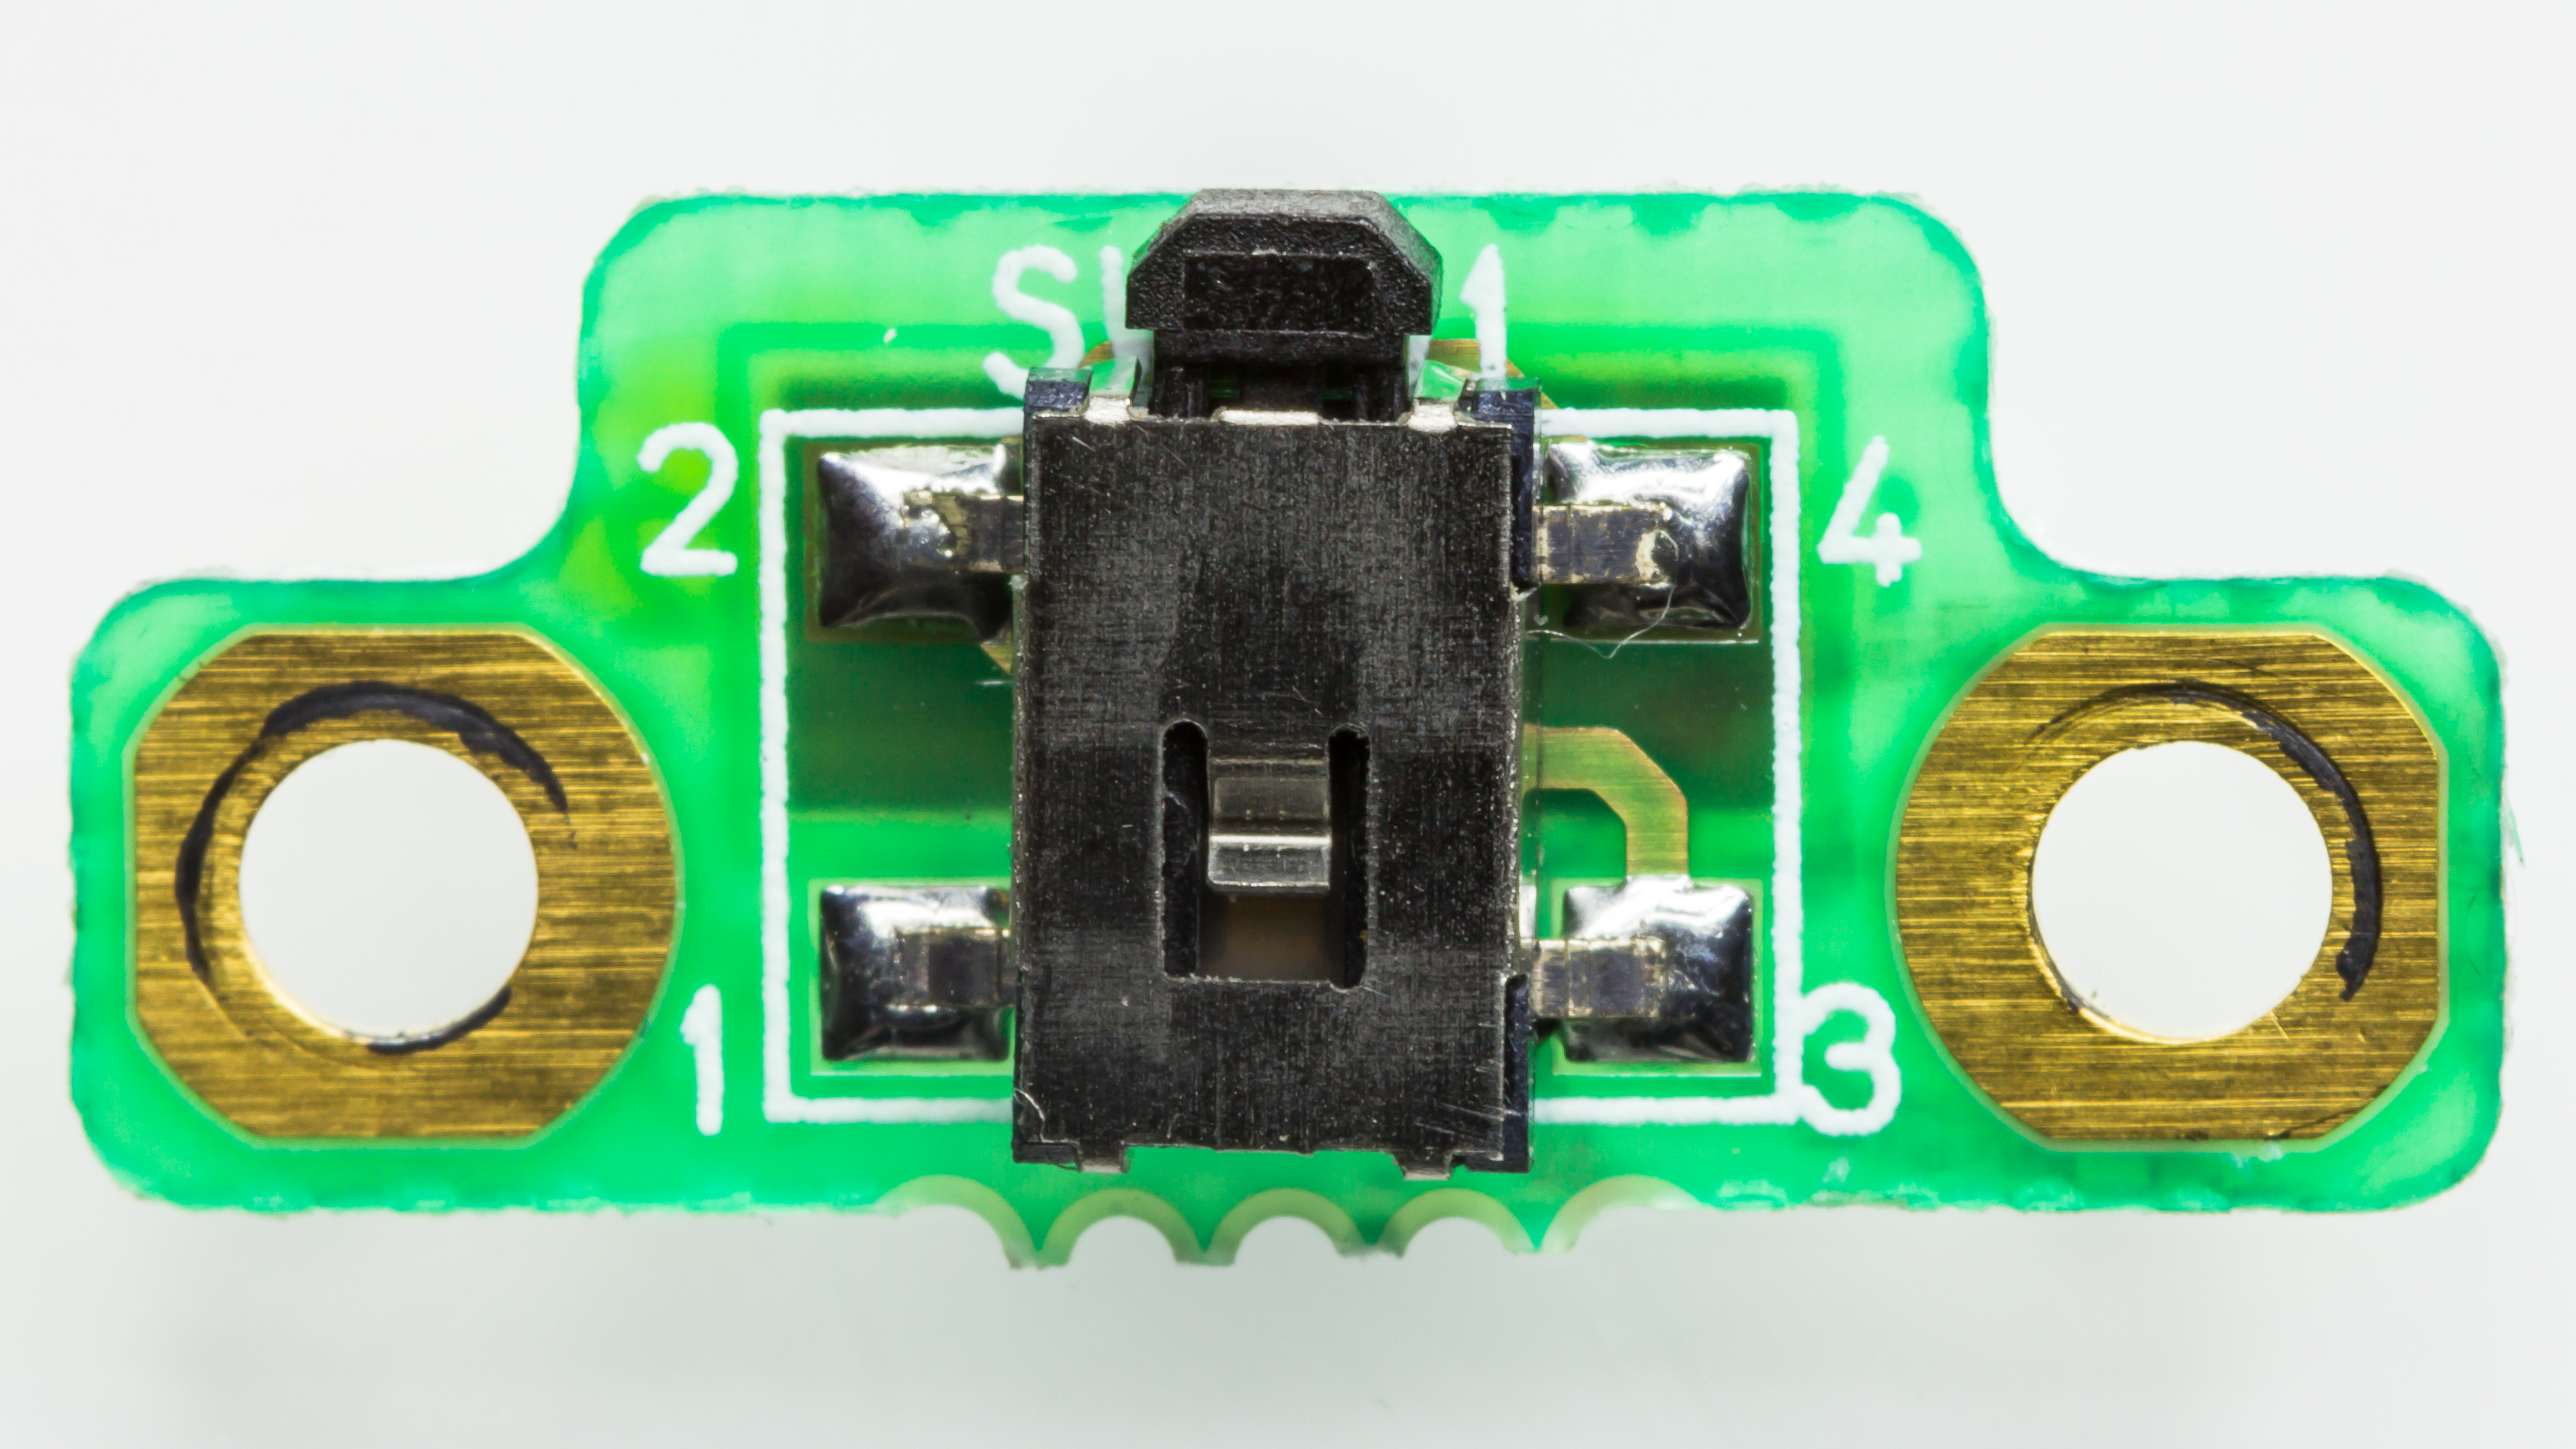 Dateimicroswitch On A Printed Circuit Board 2415 Wikipedia Tape